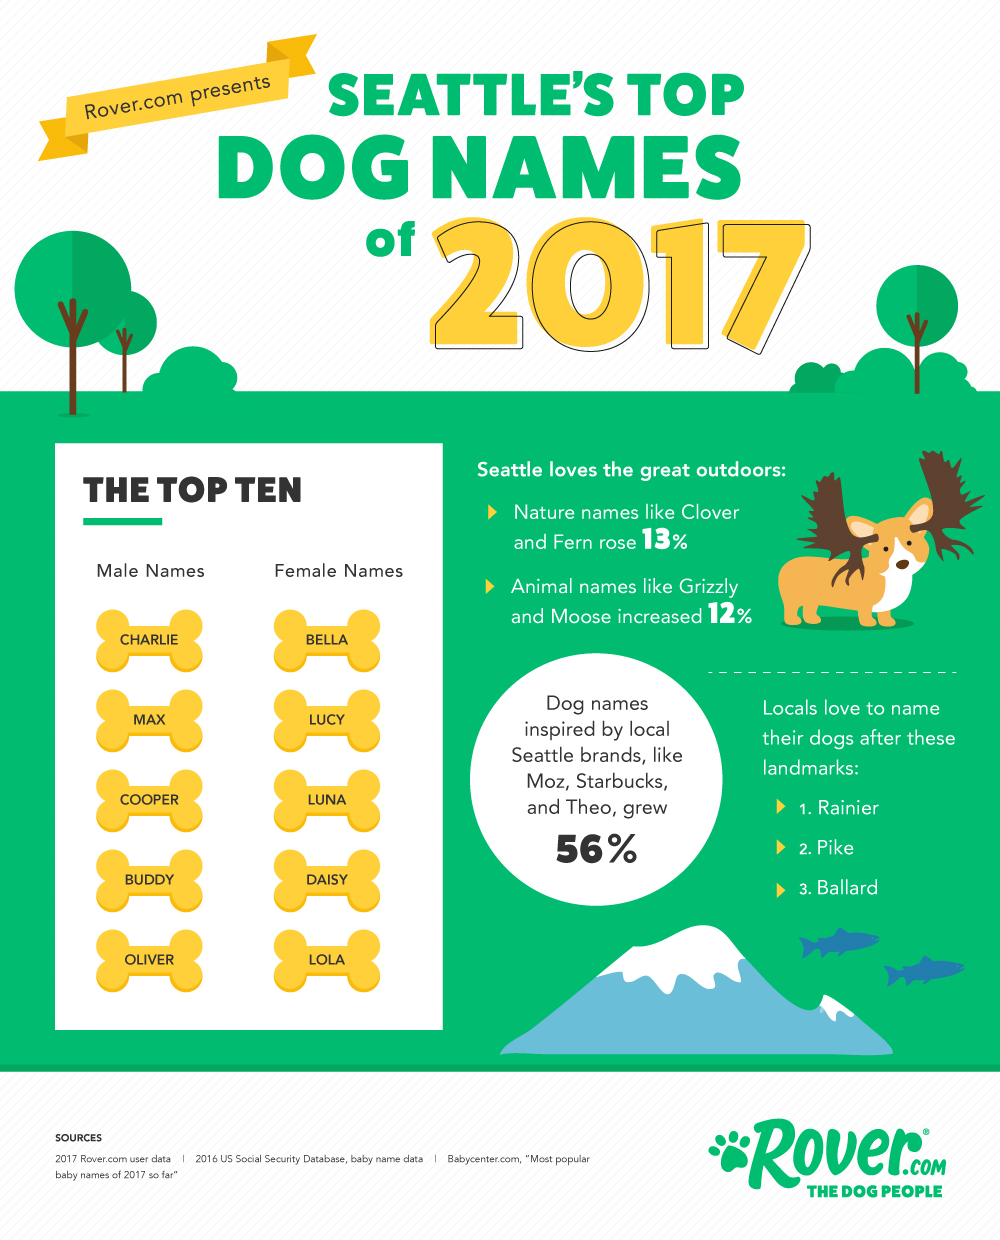 Seattle's Top Dog Names Of 2017